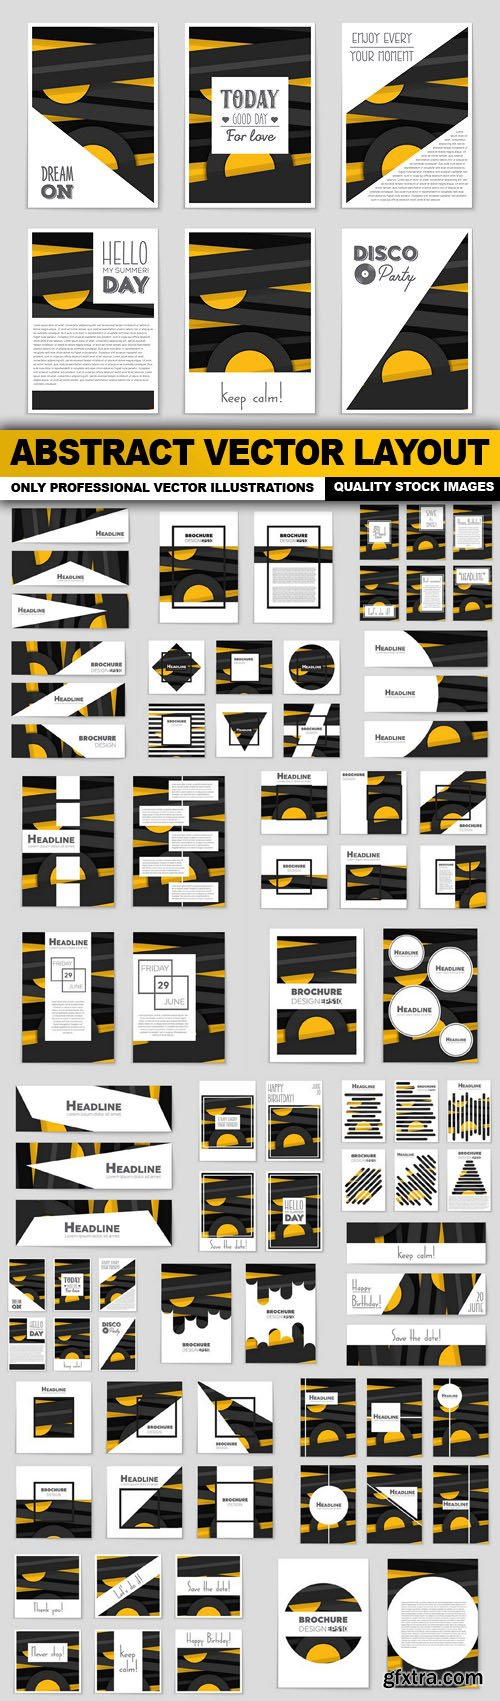 Abstract Vector Layout - 20 Vector